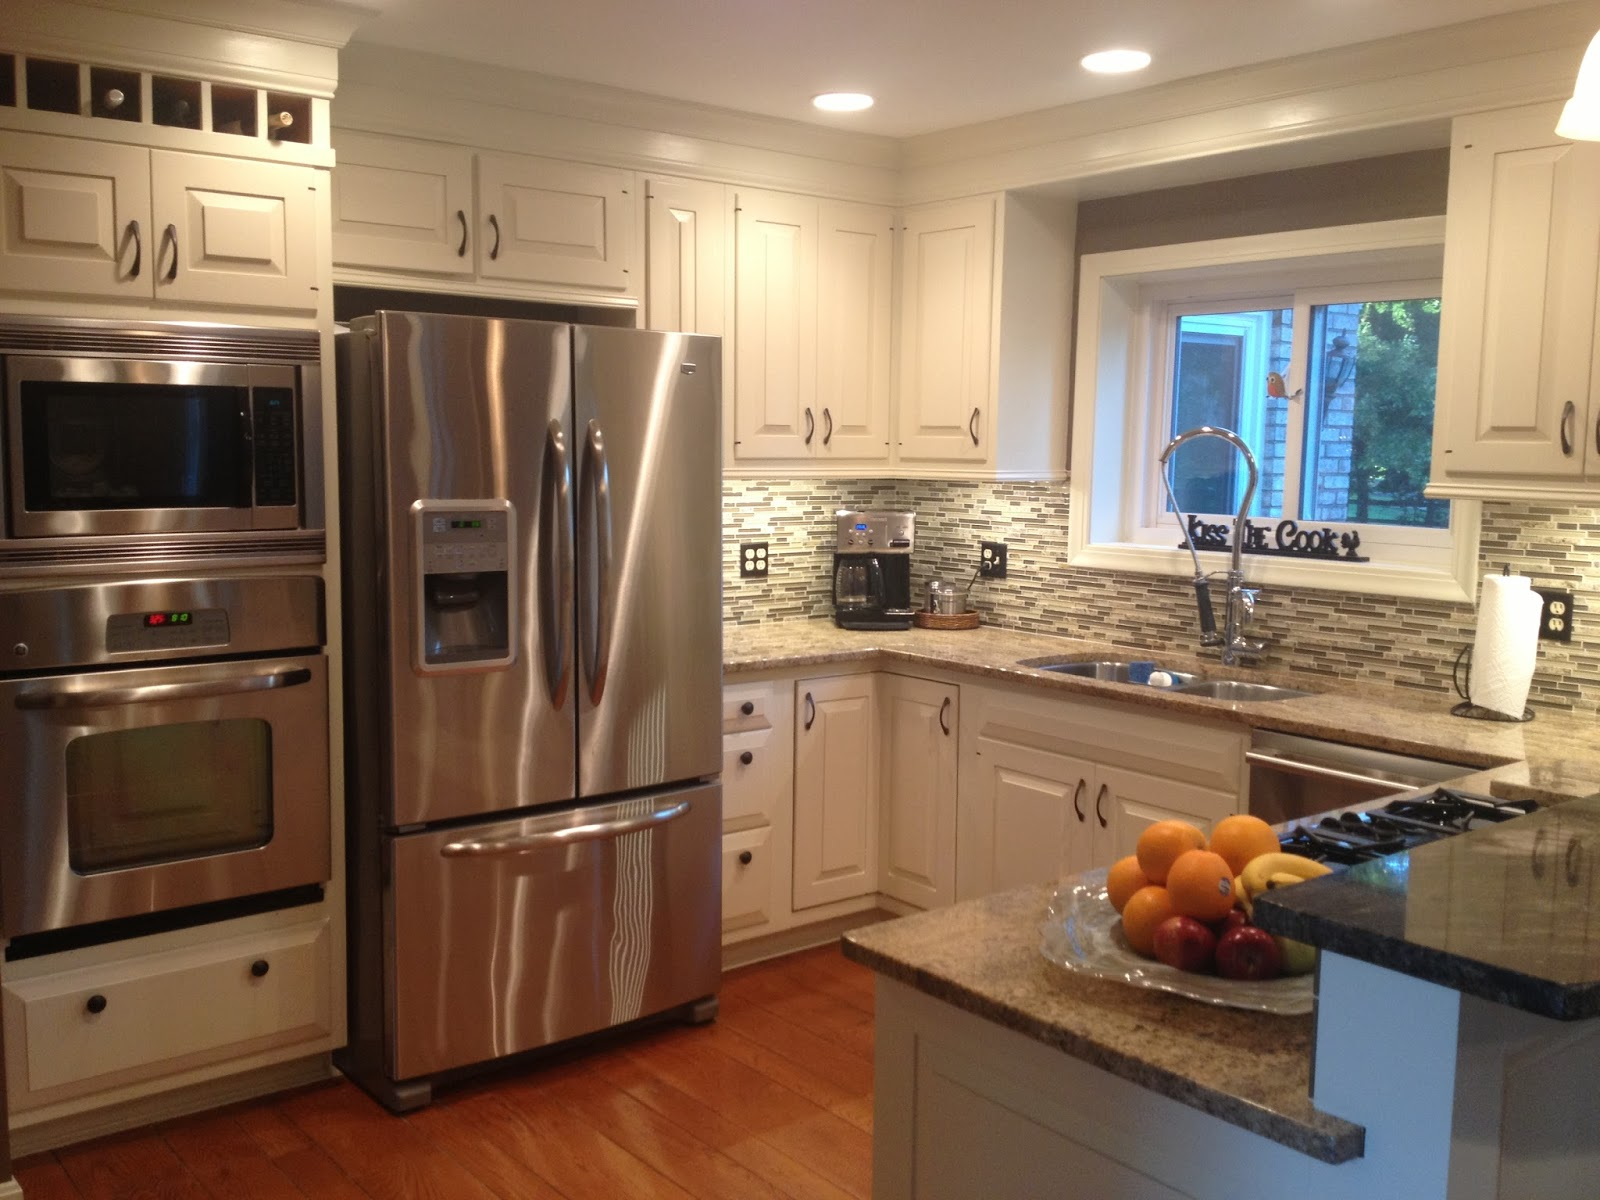 Four seasons style the new kitchen remodel on a budget for Small kitchen remodel pictures